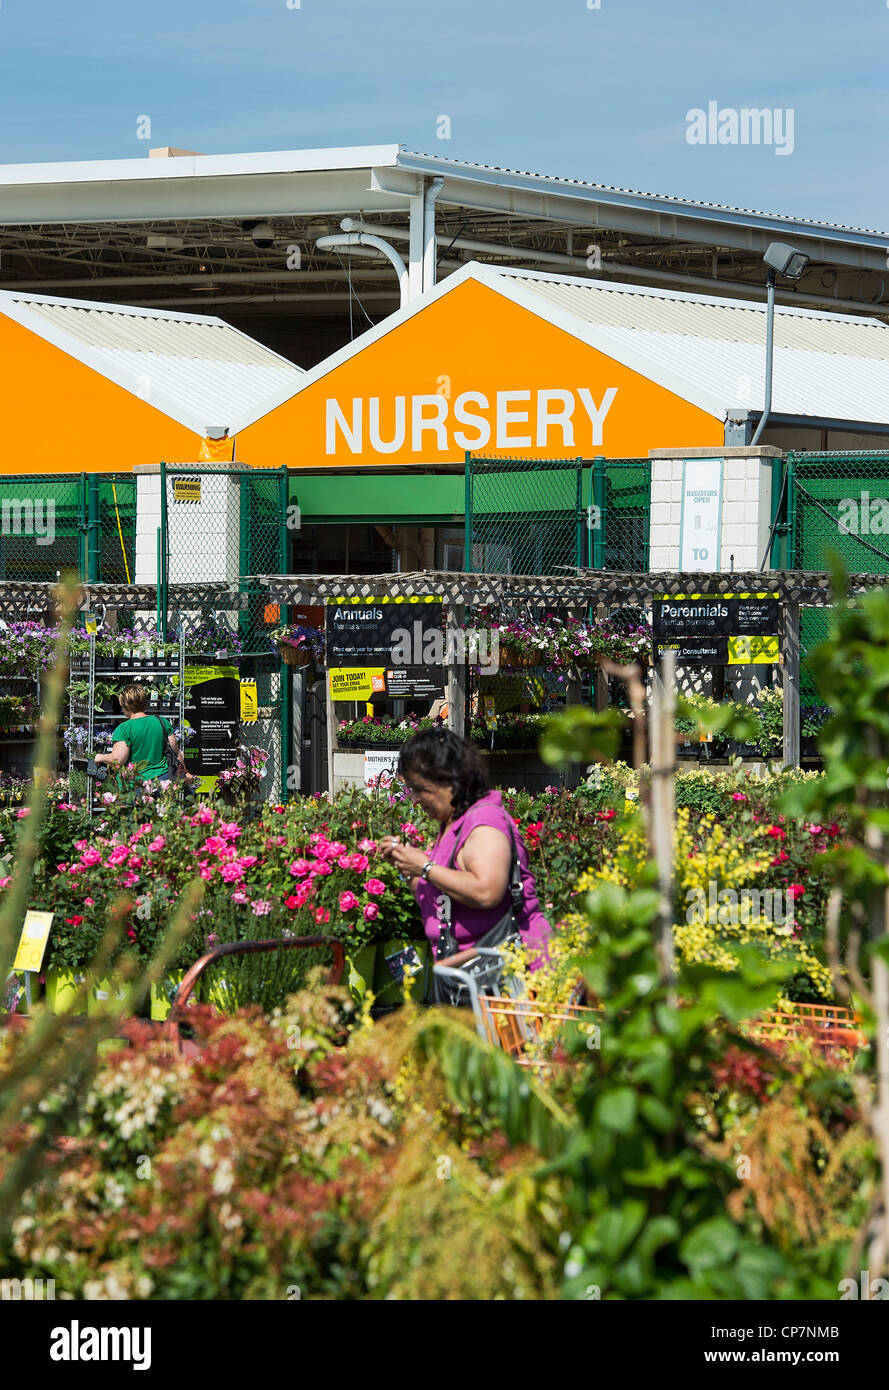 Shopping for plants at a nursery. - Stock Image